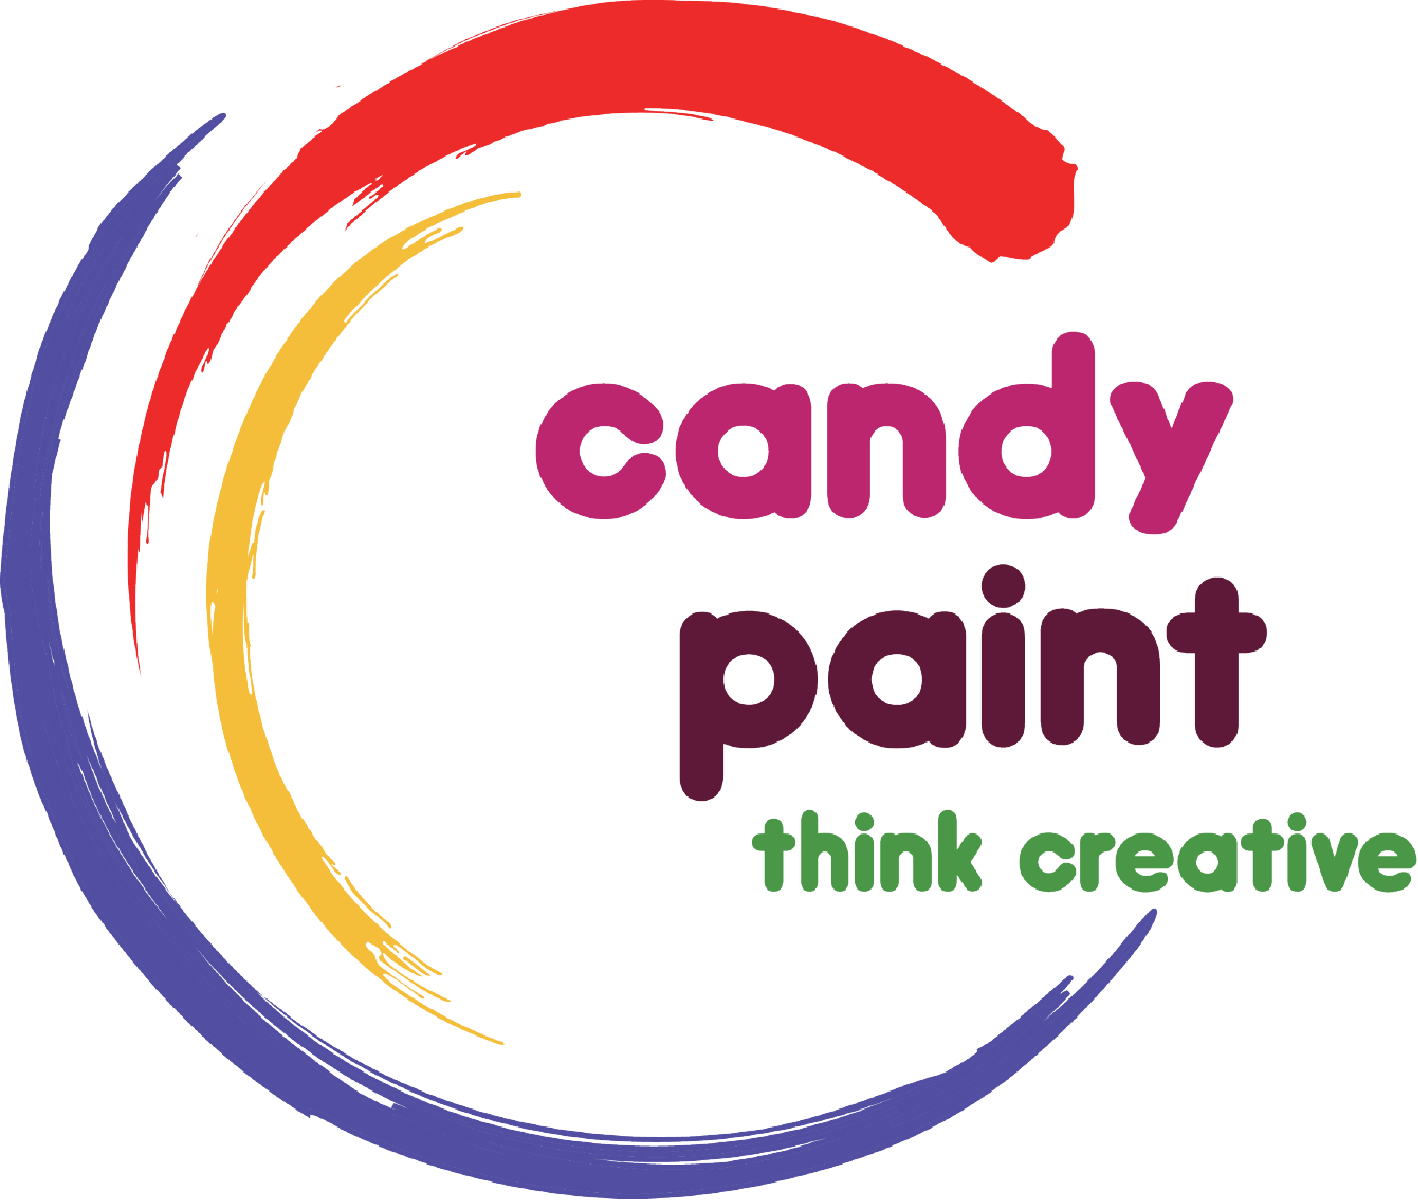 Candy Paint Asia by Flexspace Sdn Bhd - creative-board.com